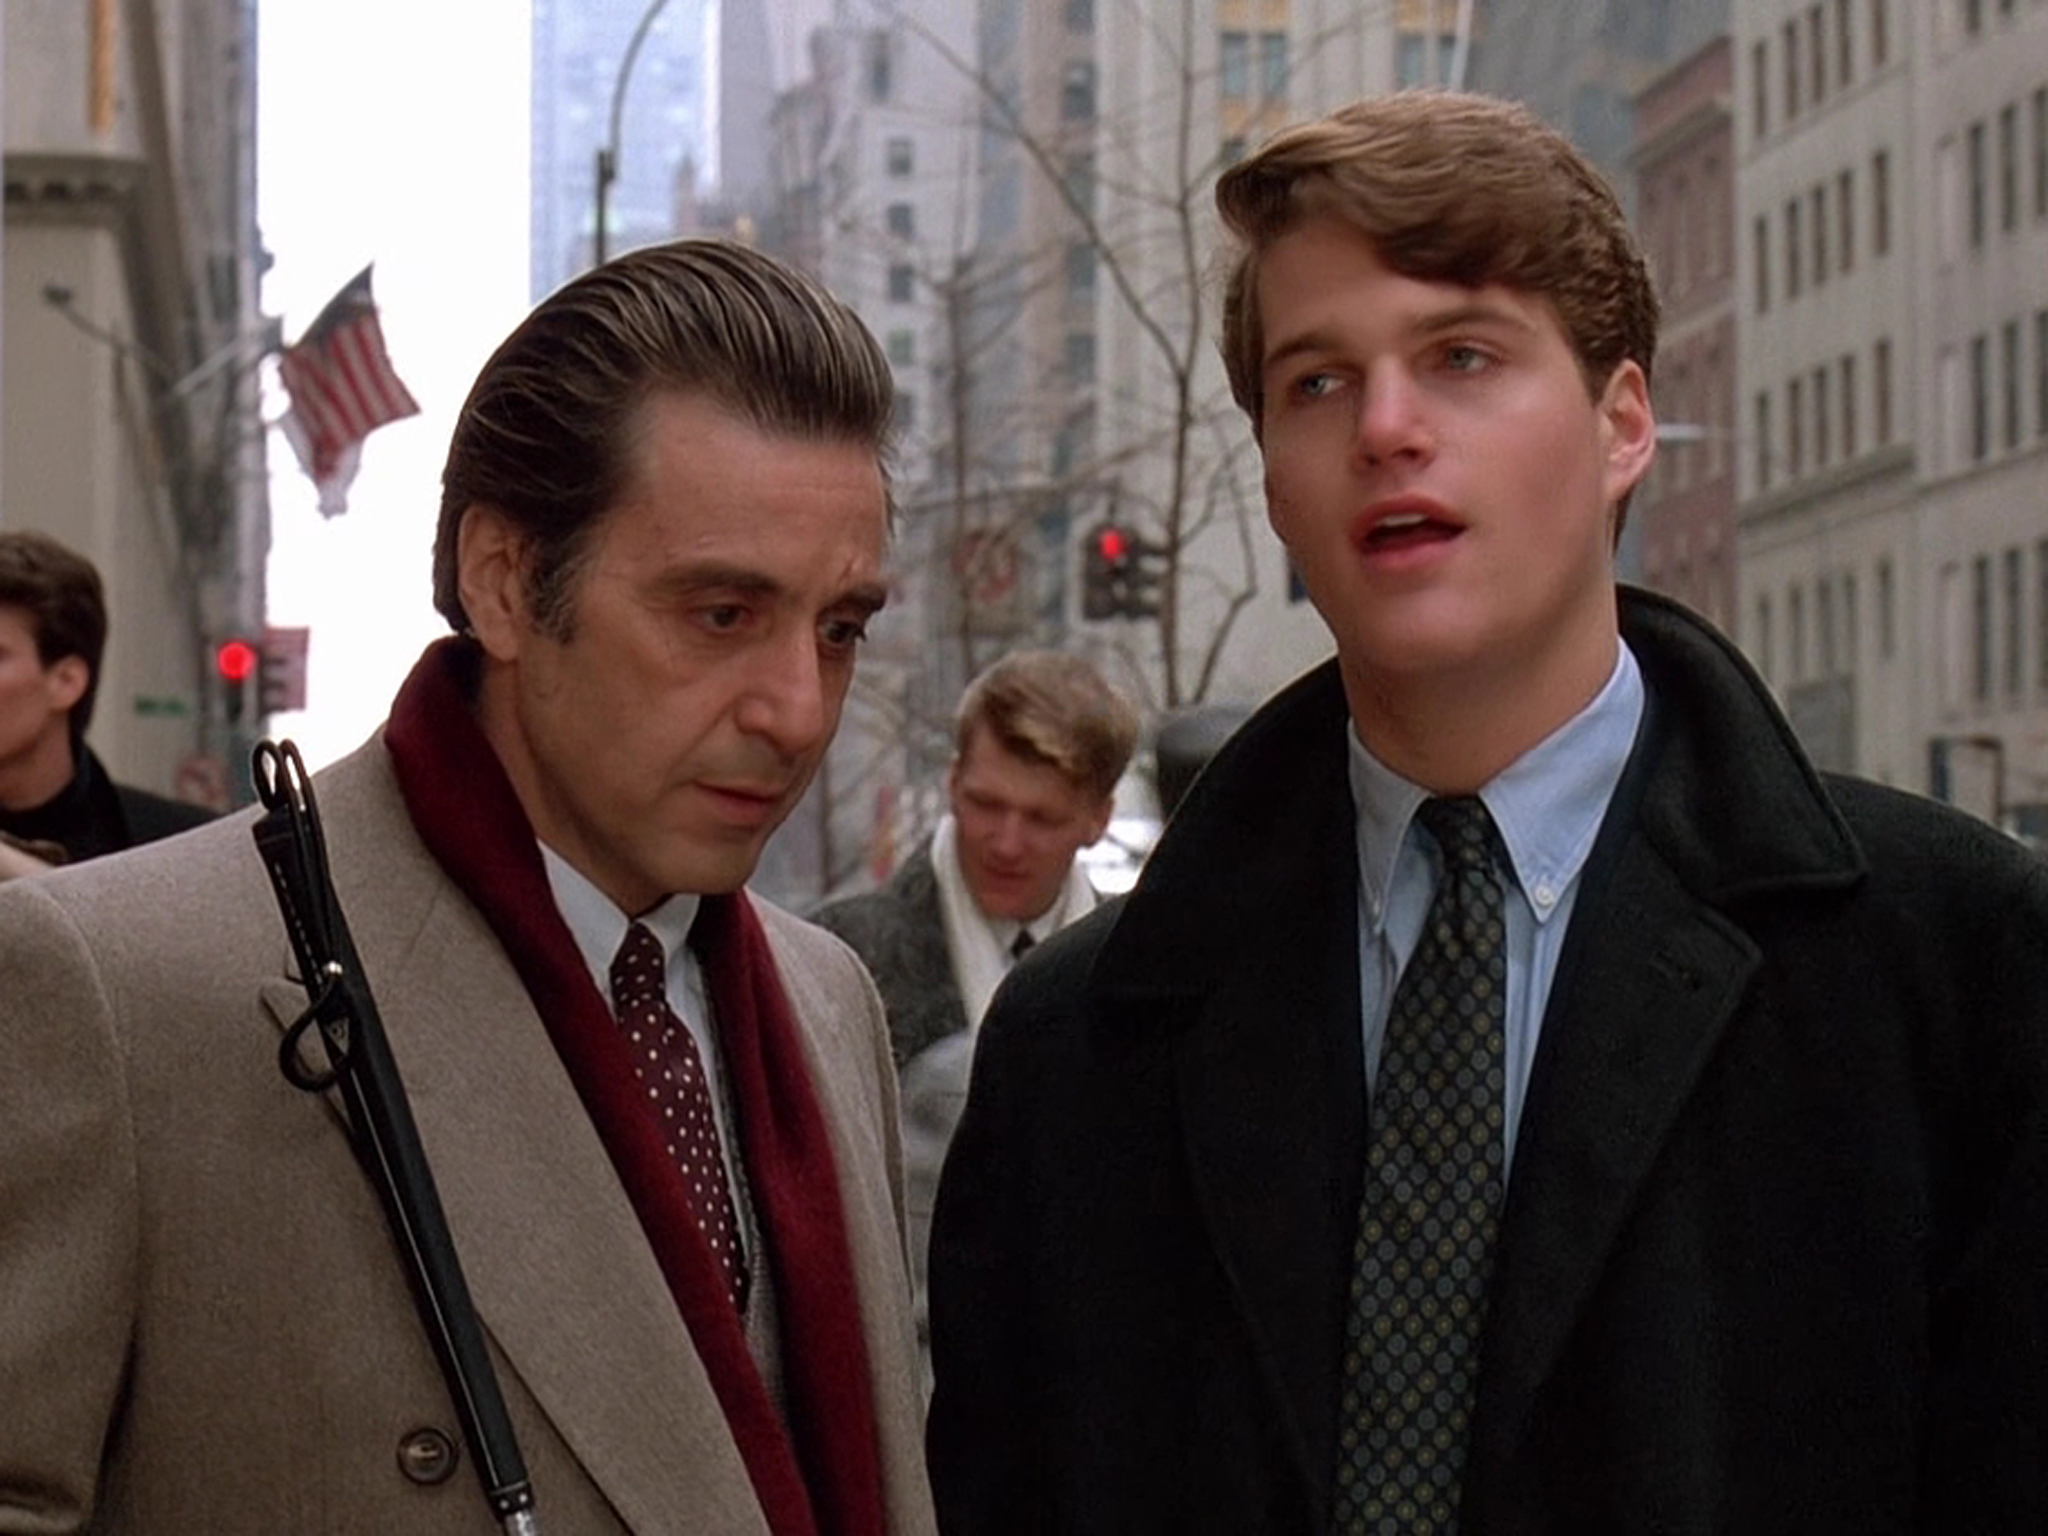 Al Pacino's worst performances, Scent of a Woman